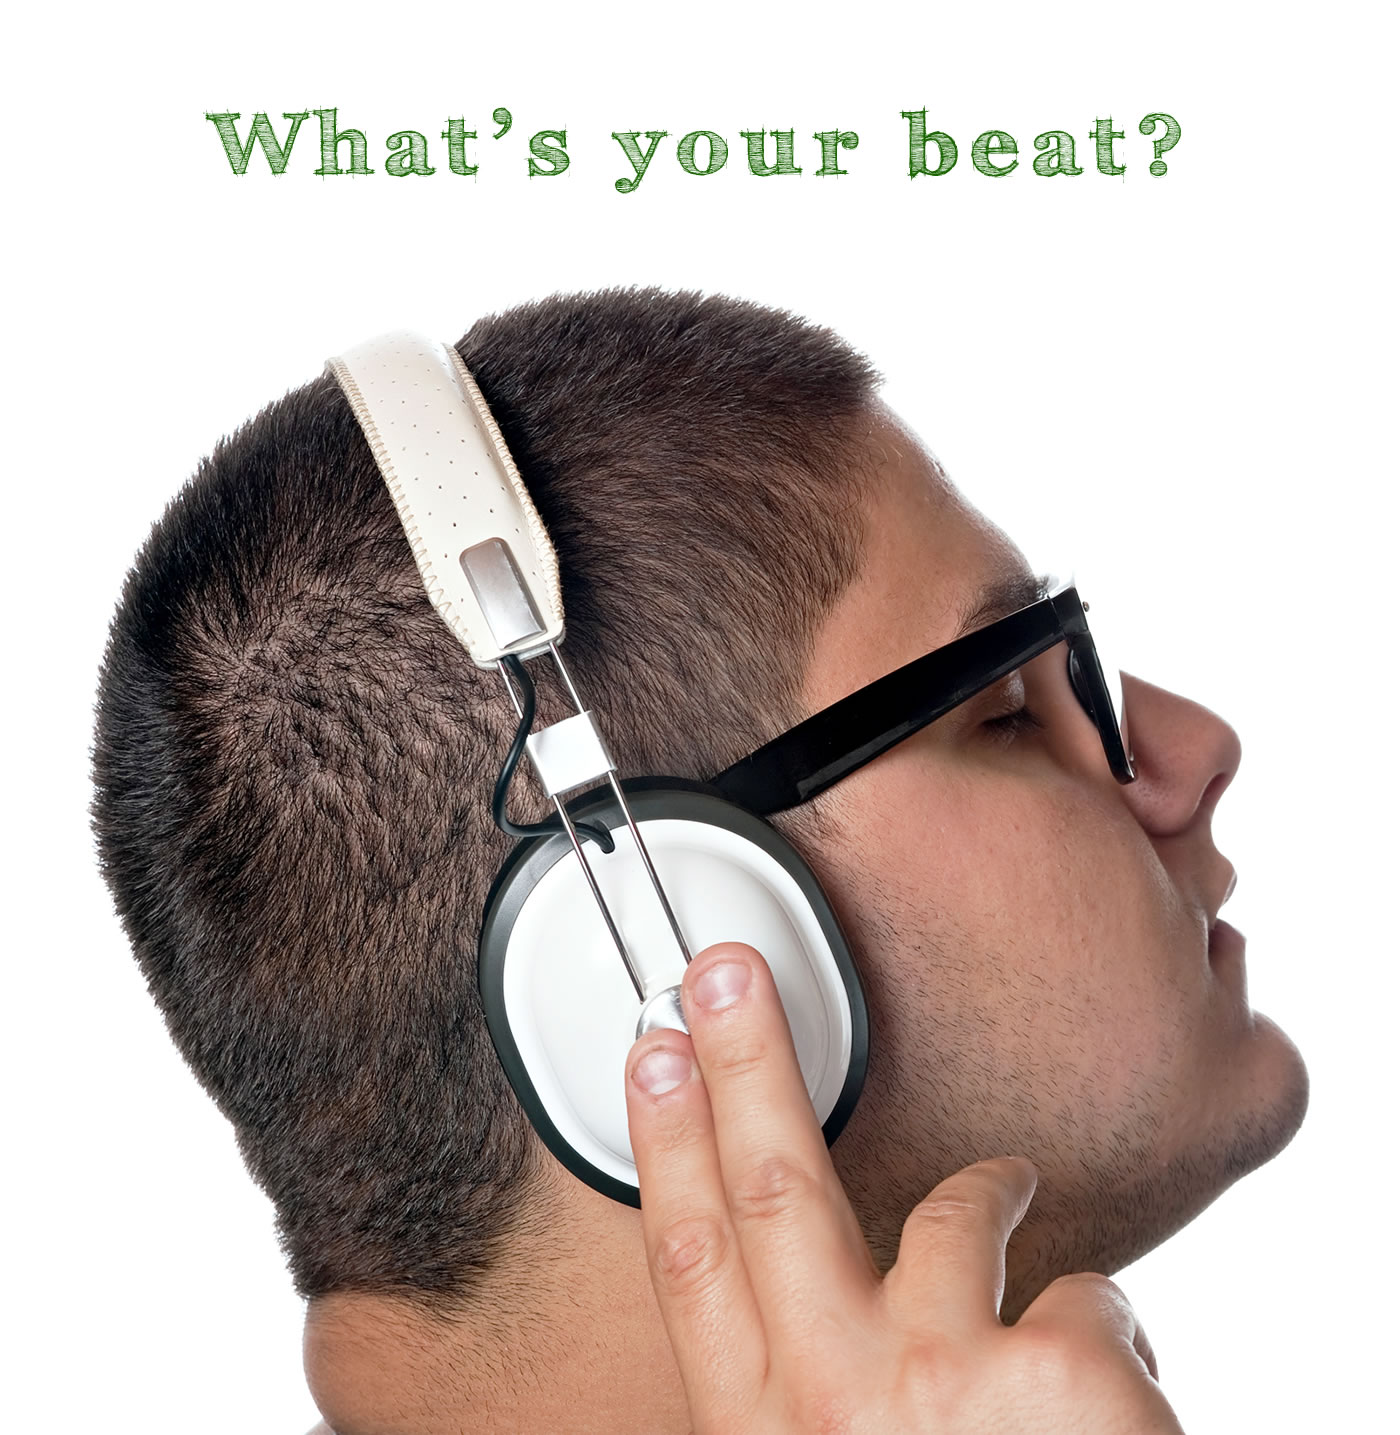 Filmswork knows its beat, do you?